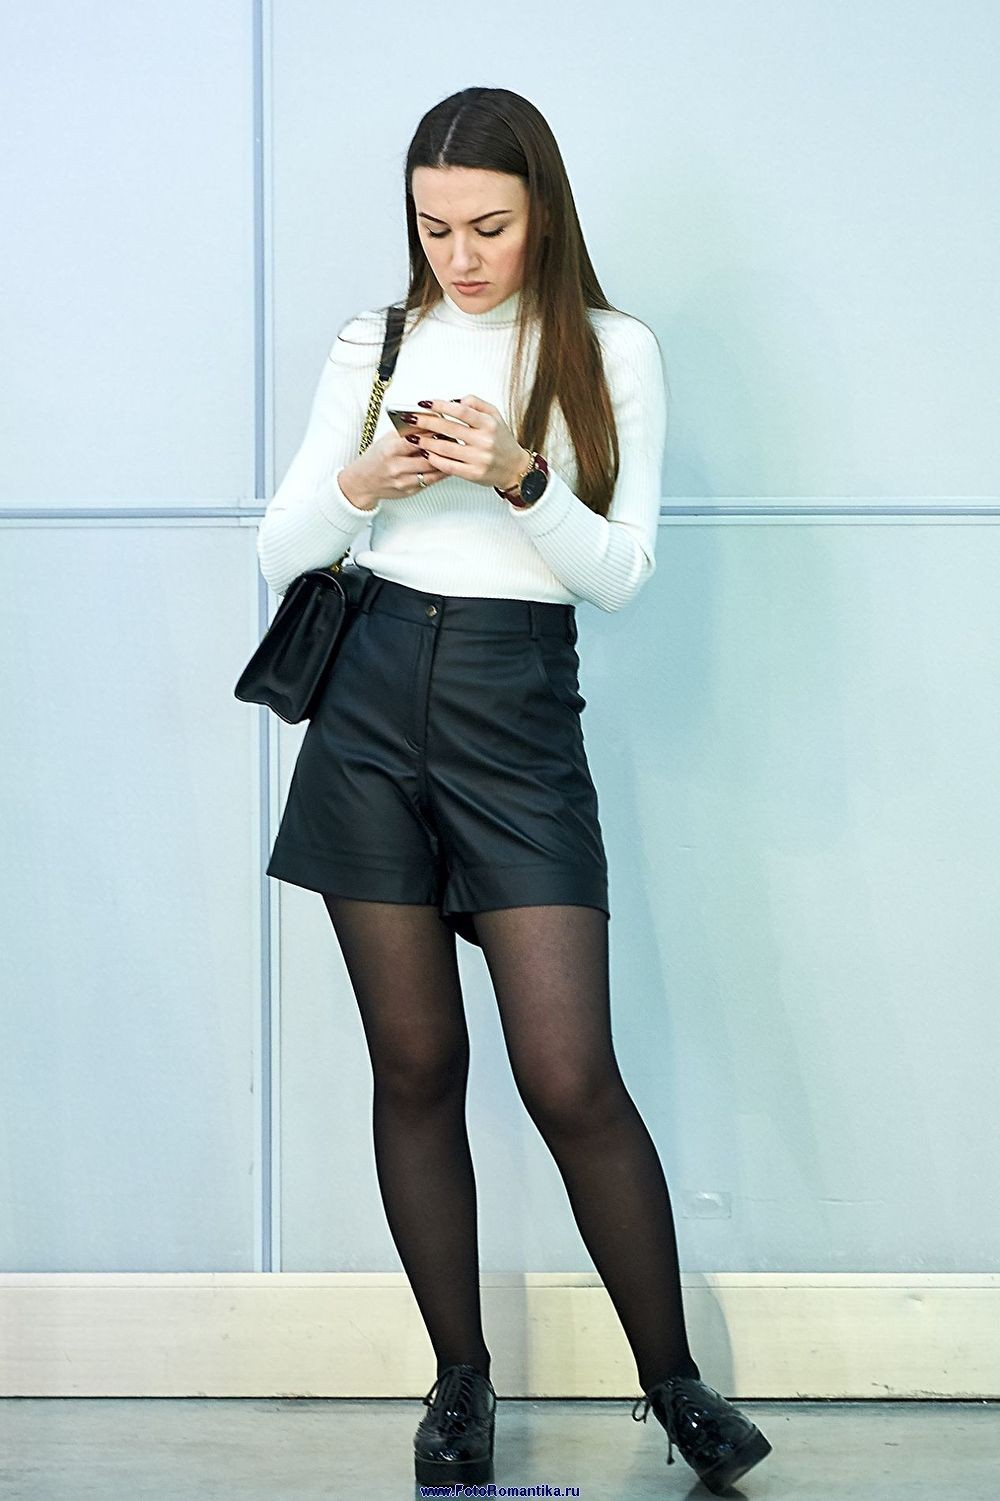 Black and white outfit with miniskirt, pantyhose, stocking